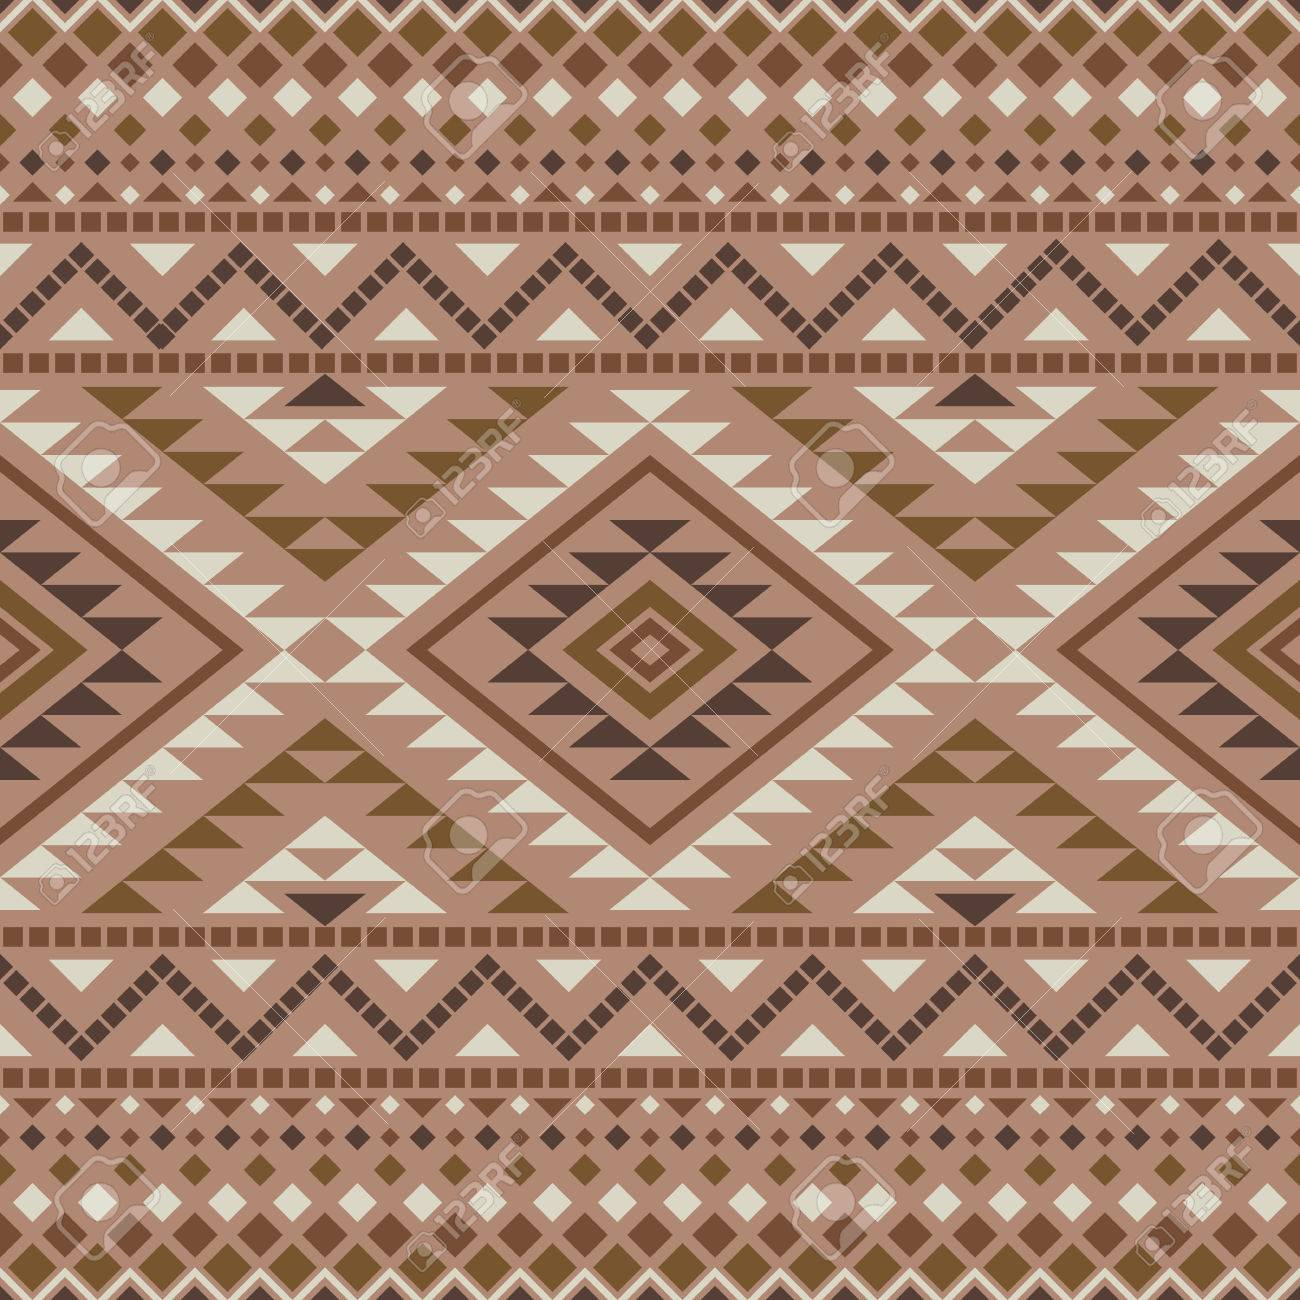 Aztec Wallpaper Seamless Pattern With Ethnic Aztec Ornament